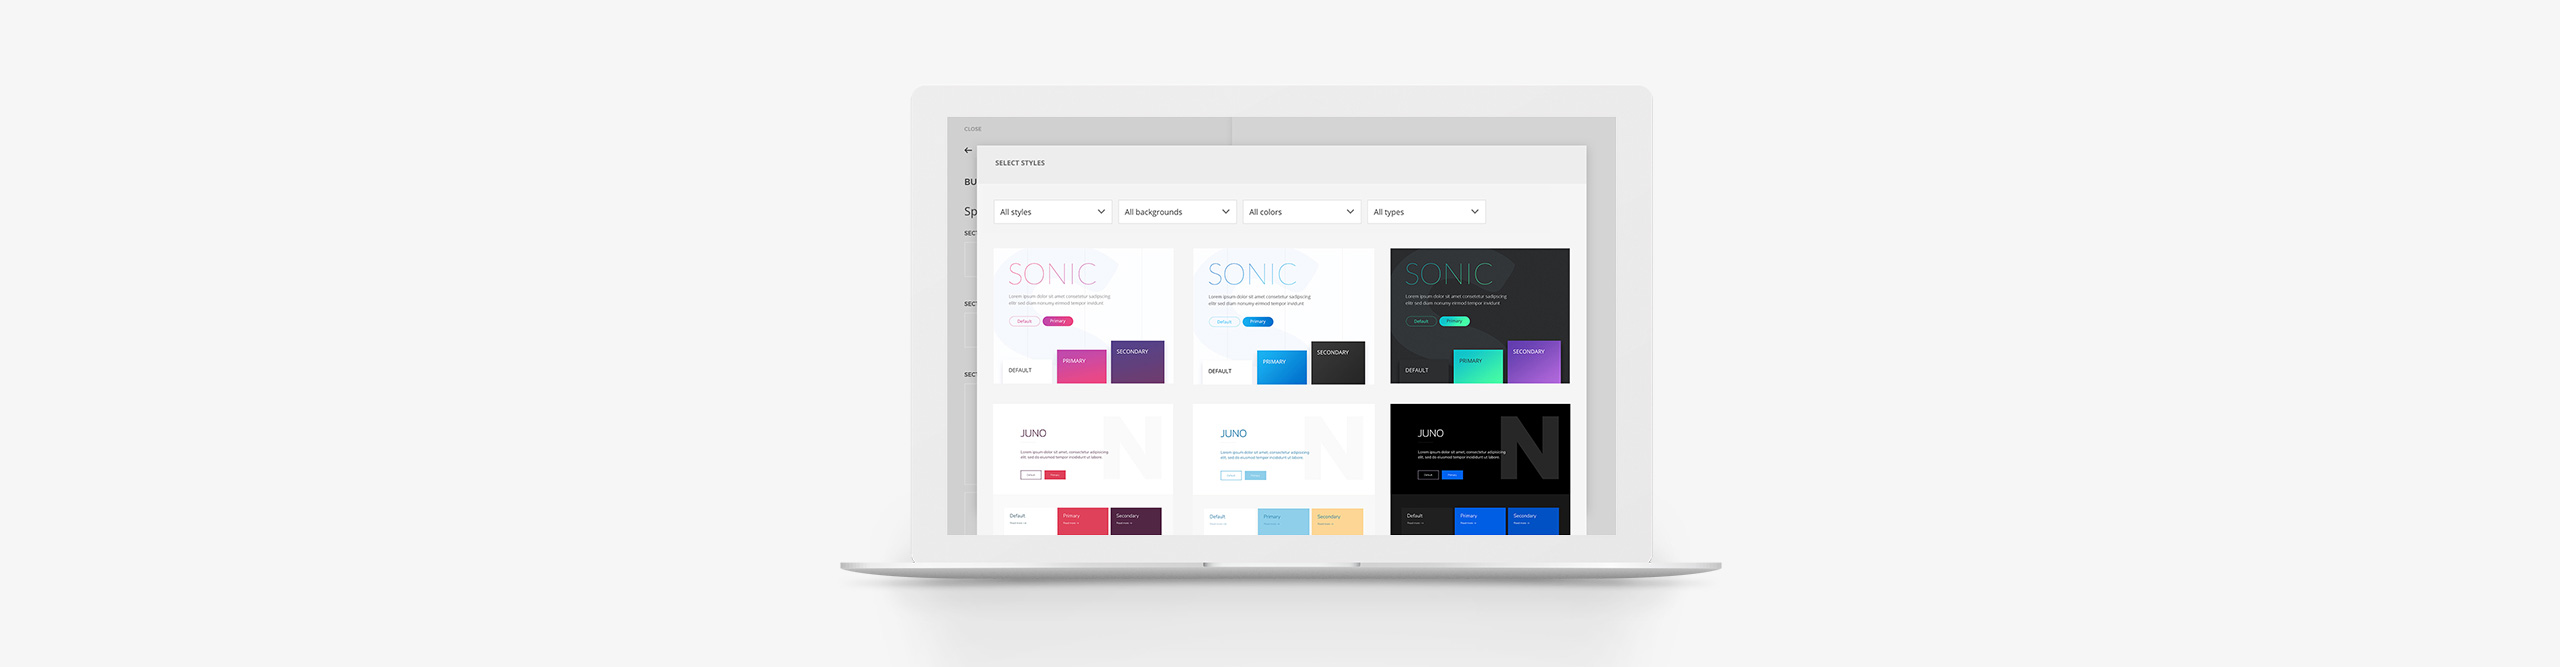 YOOtheme Pro 1.8 – A new style library and link picker - YOOtheme